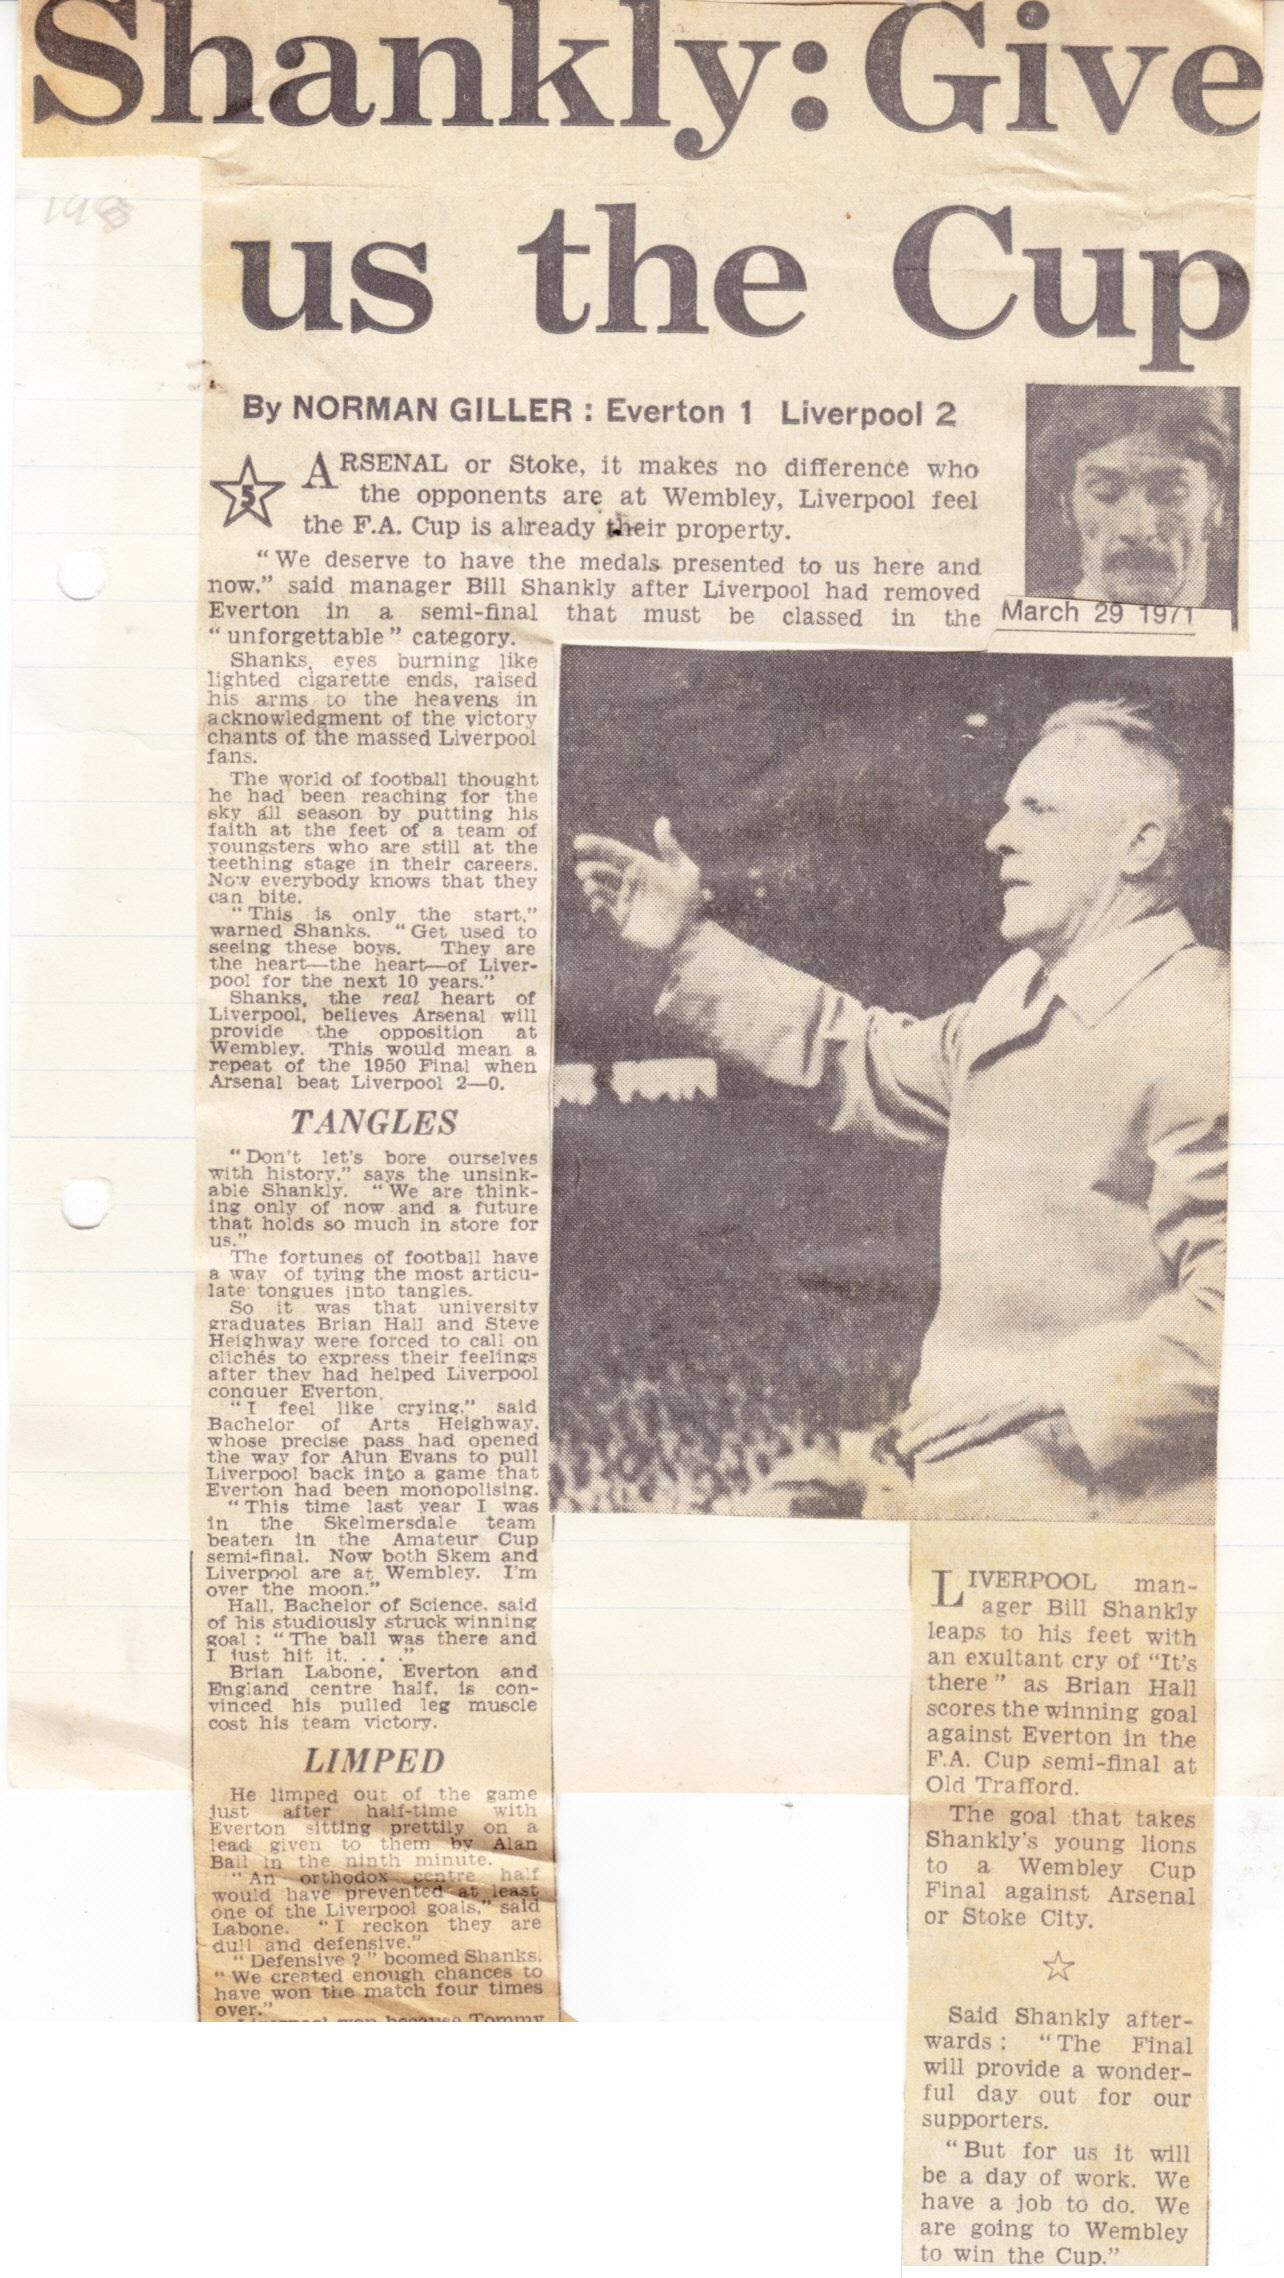 Give us the cup! Shankly demands in 1971